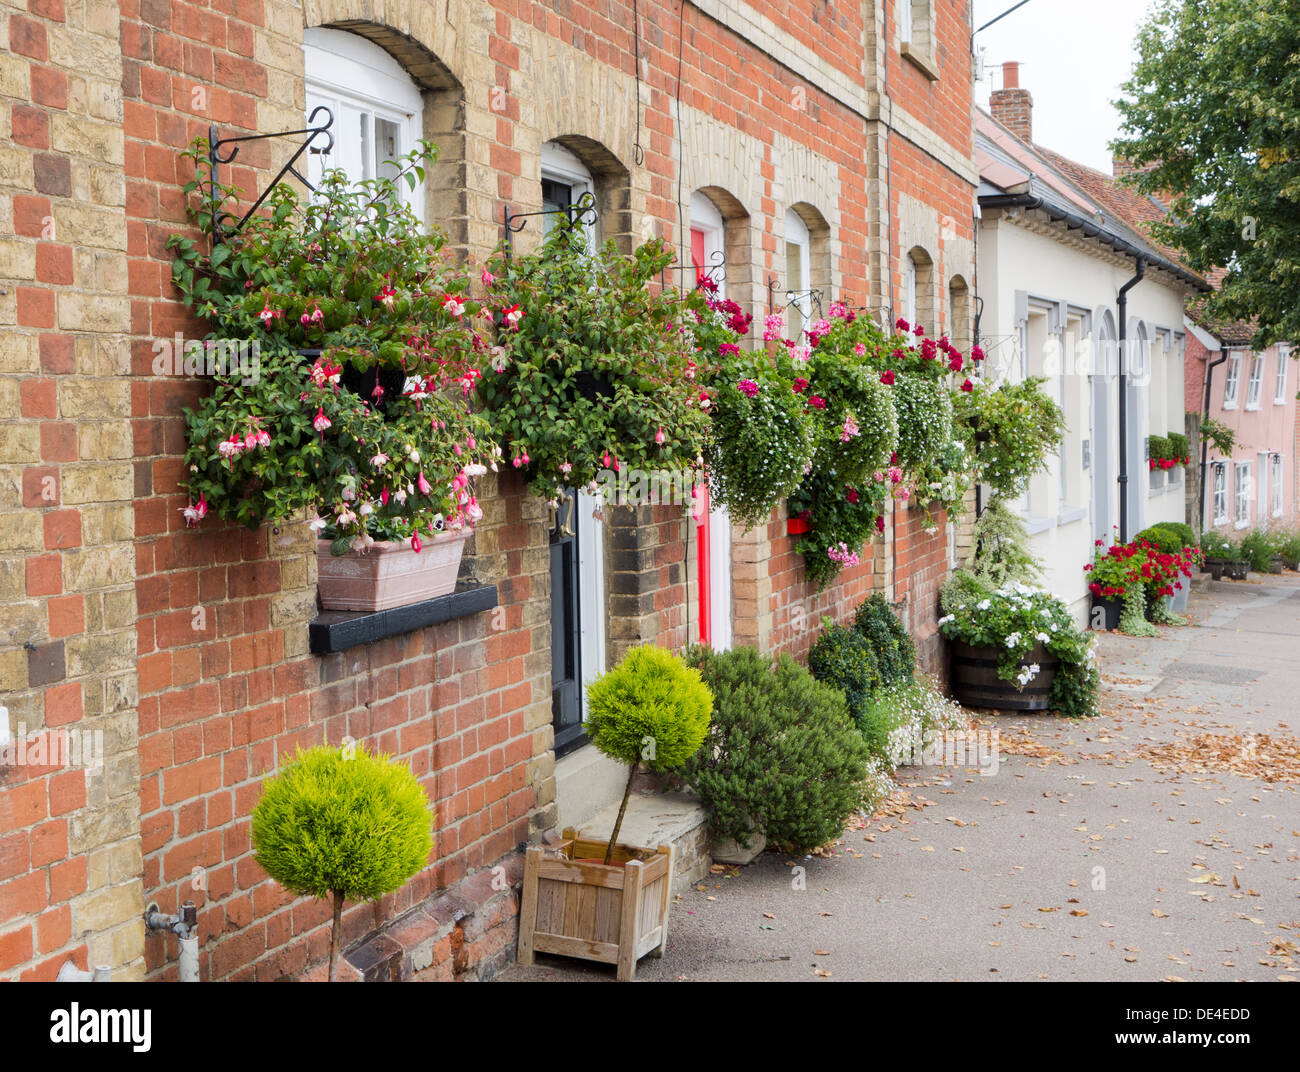 Many Hanging Baskets And Tubs Of Plants At The Front Of A